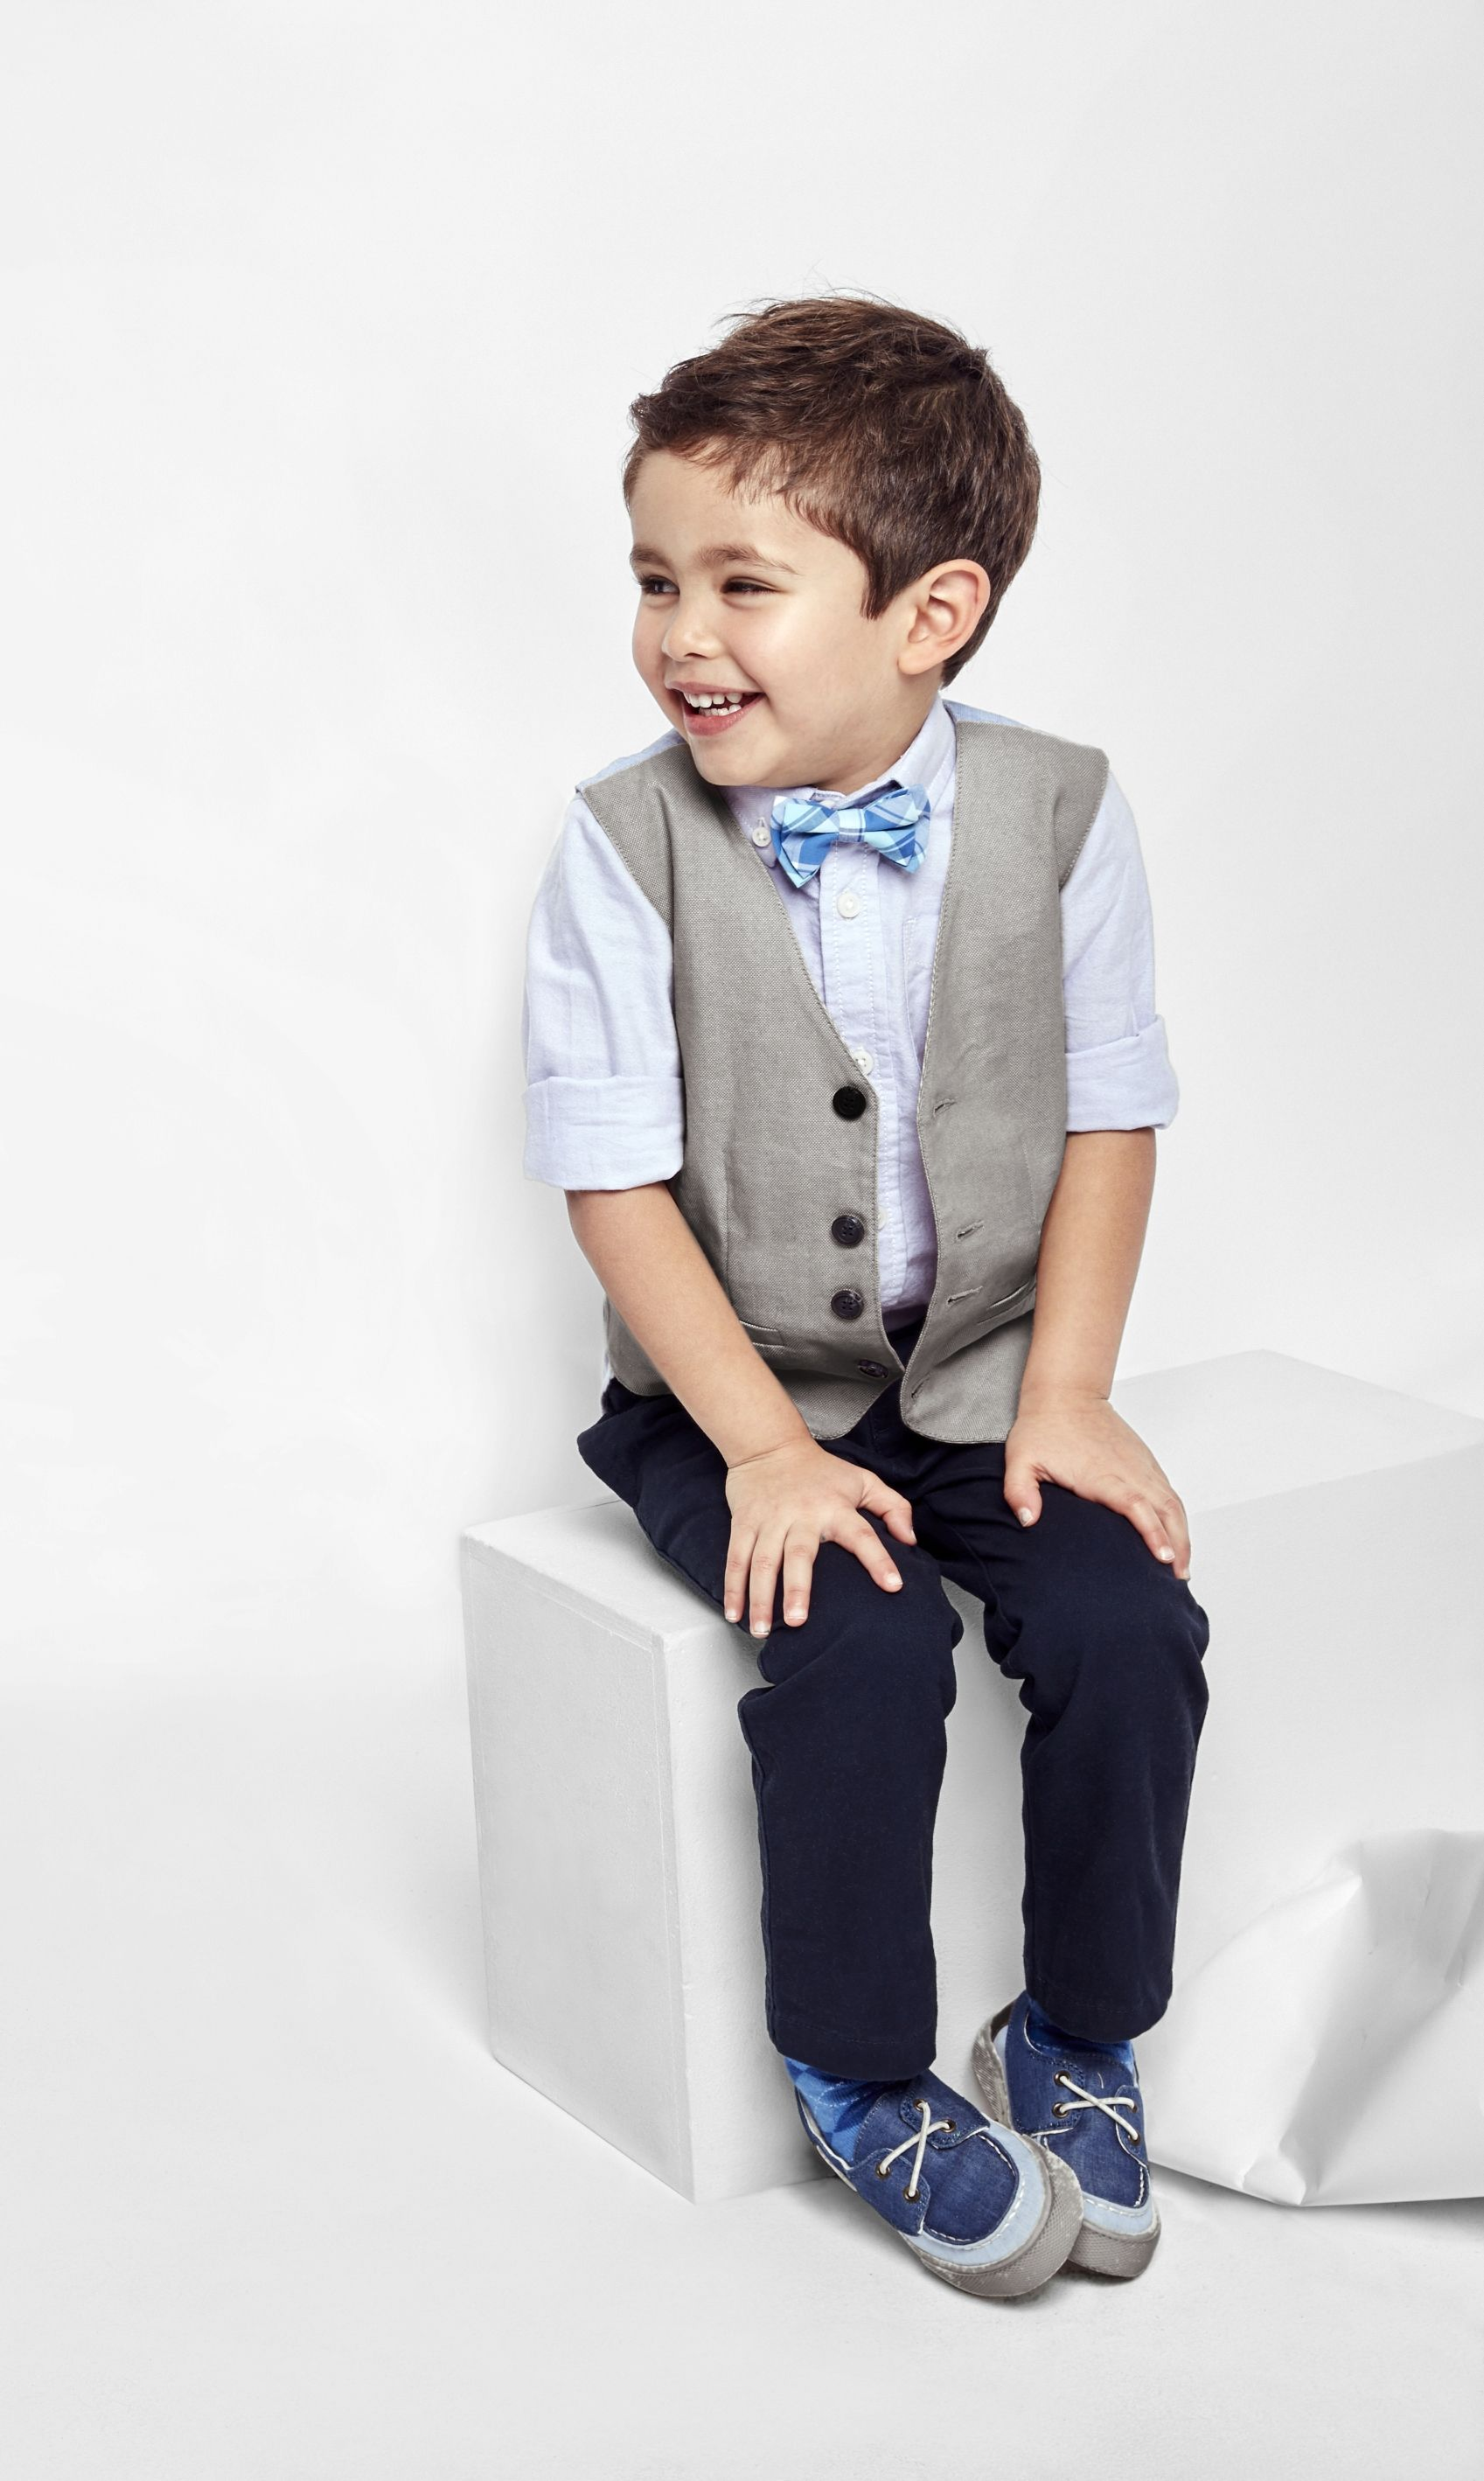 8491644ca Style for every little gentleman | Toddler boys' fashion | Woven shirt |  Dressy vest | Bow tie | Chinos | Shoes | Kids' fashion | The Children's  Place